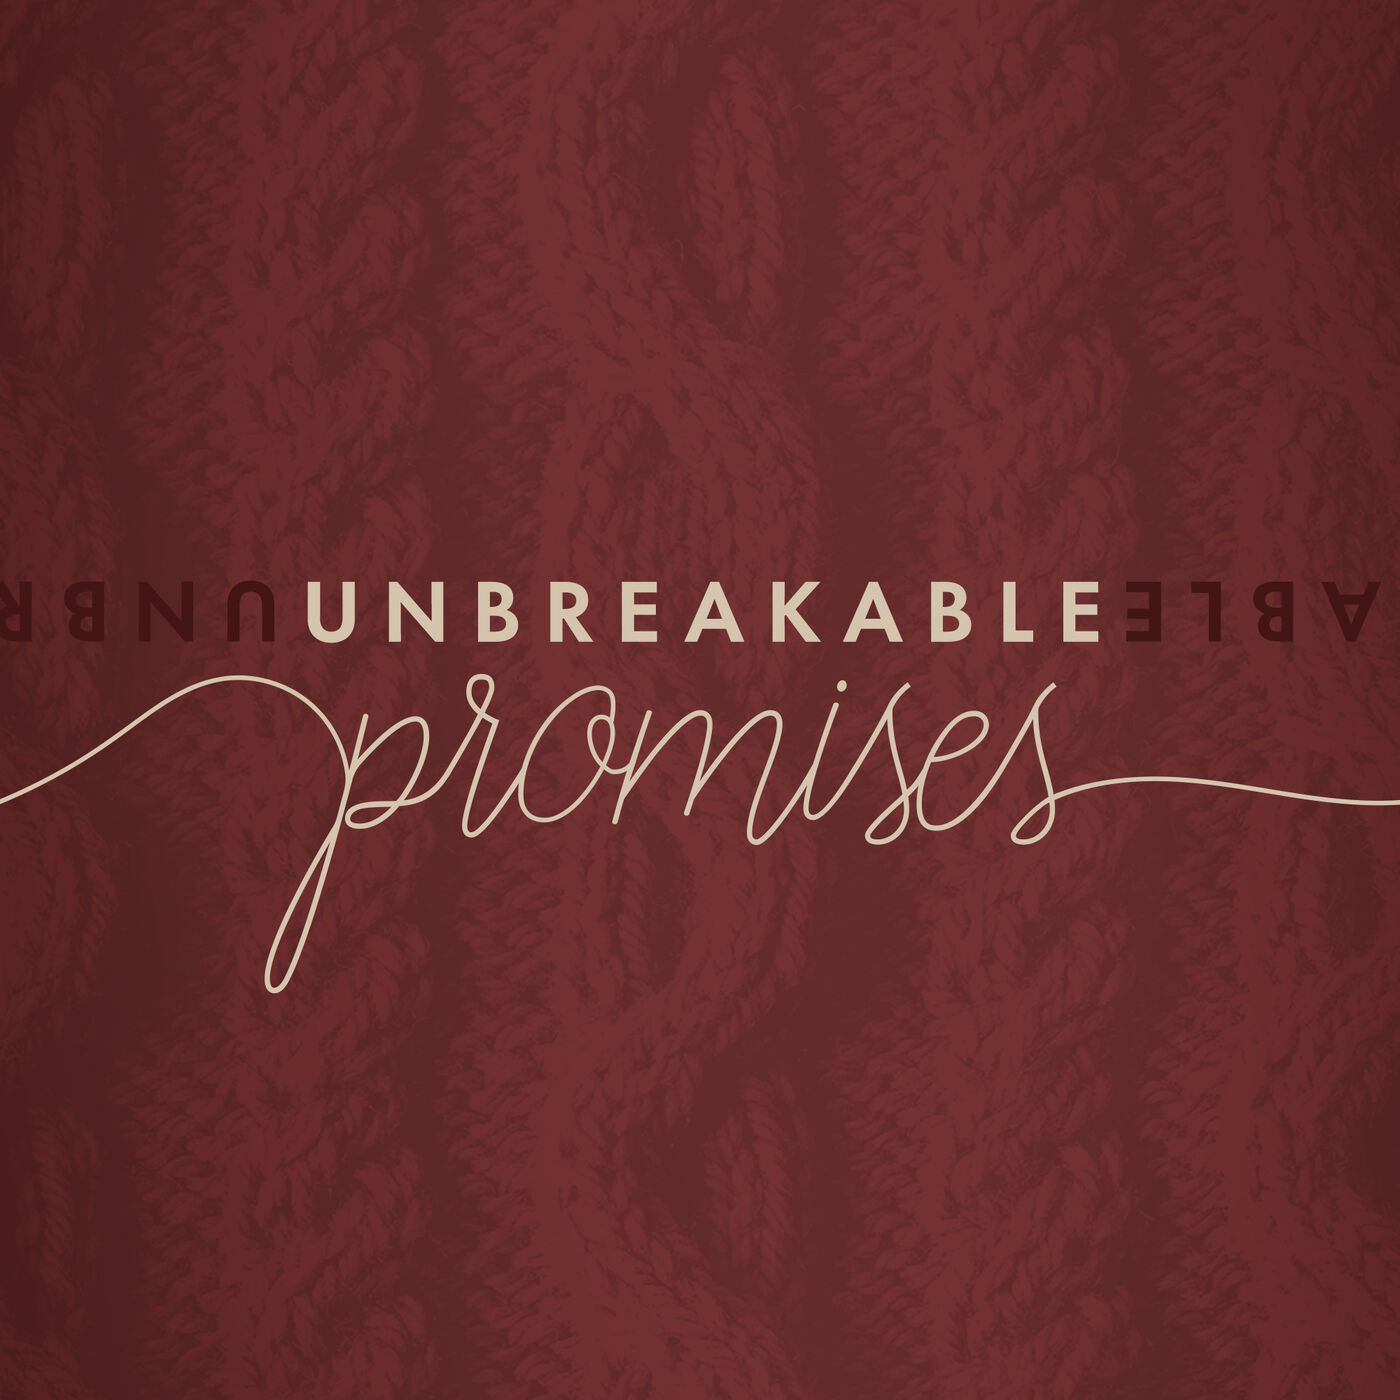 Unbreakable Promises - To Purify and to Cleanse (Week 3)